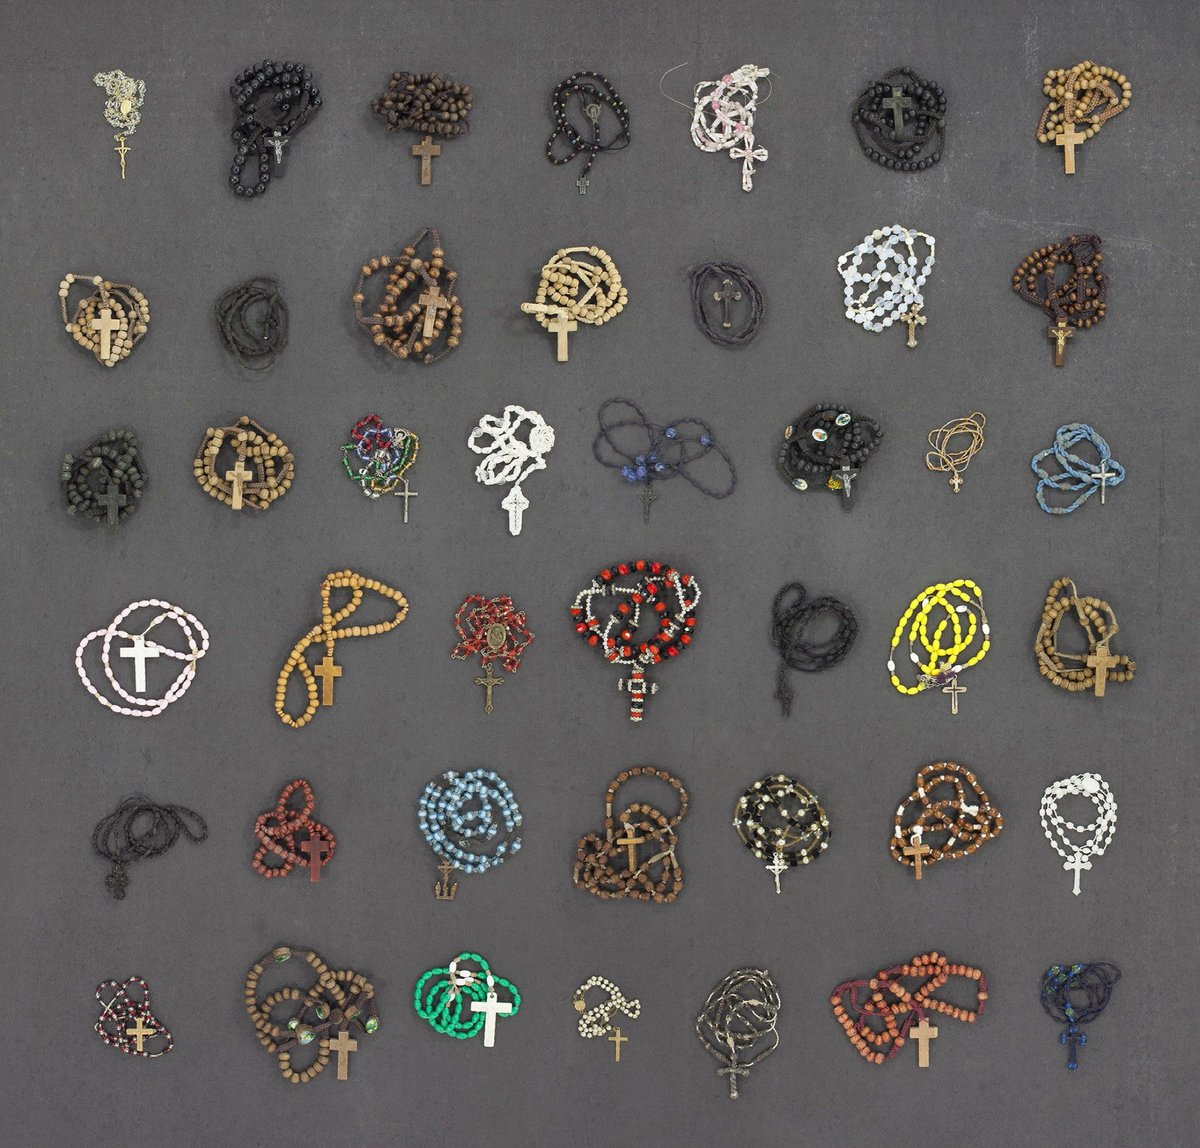 Rosaries confiscated from immigrants at the Arizona/Mexico border. [via @MikeOLoughlin] https://t.co/OP0jLhU3m1